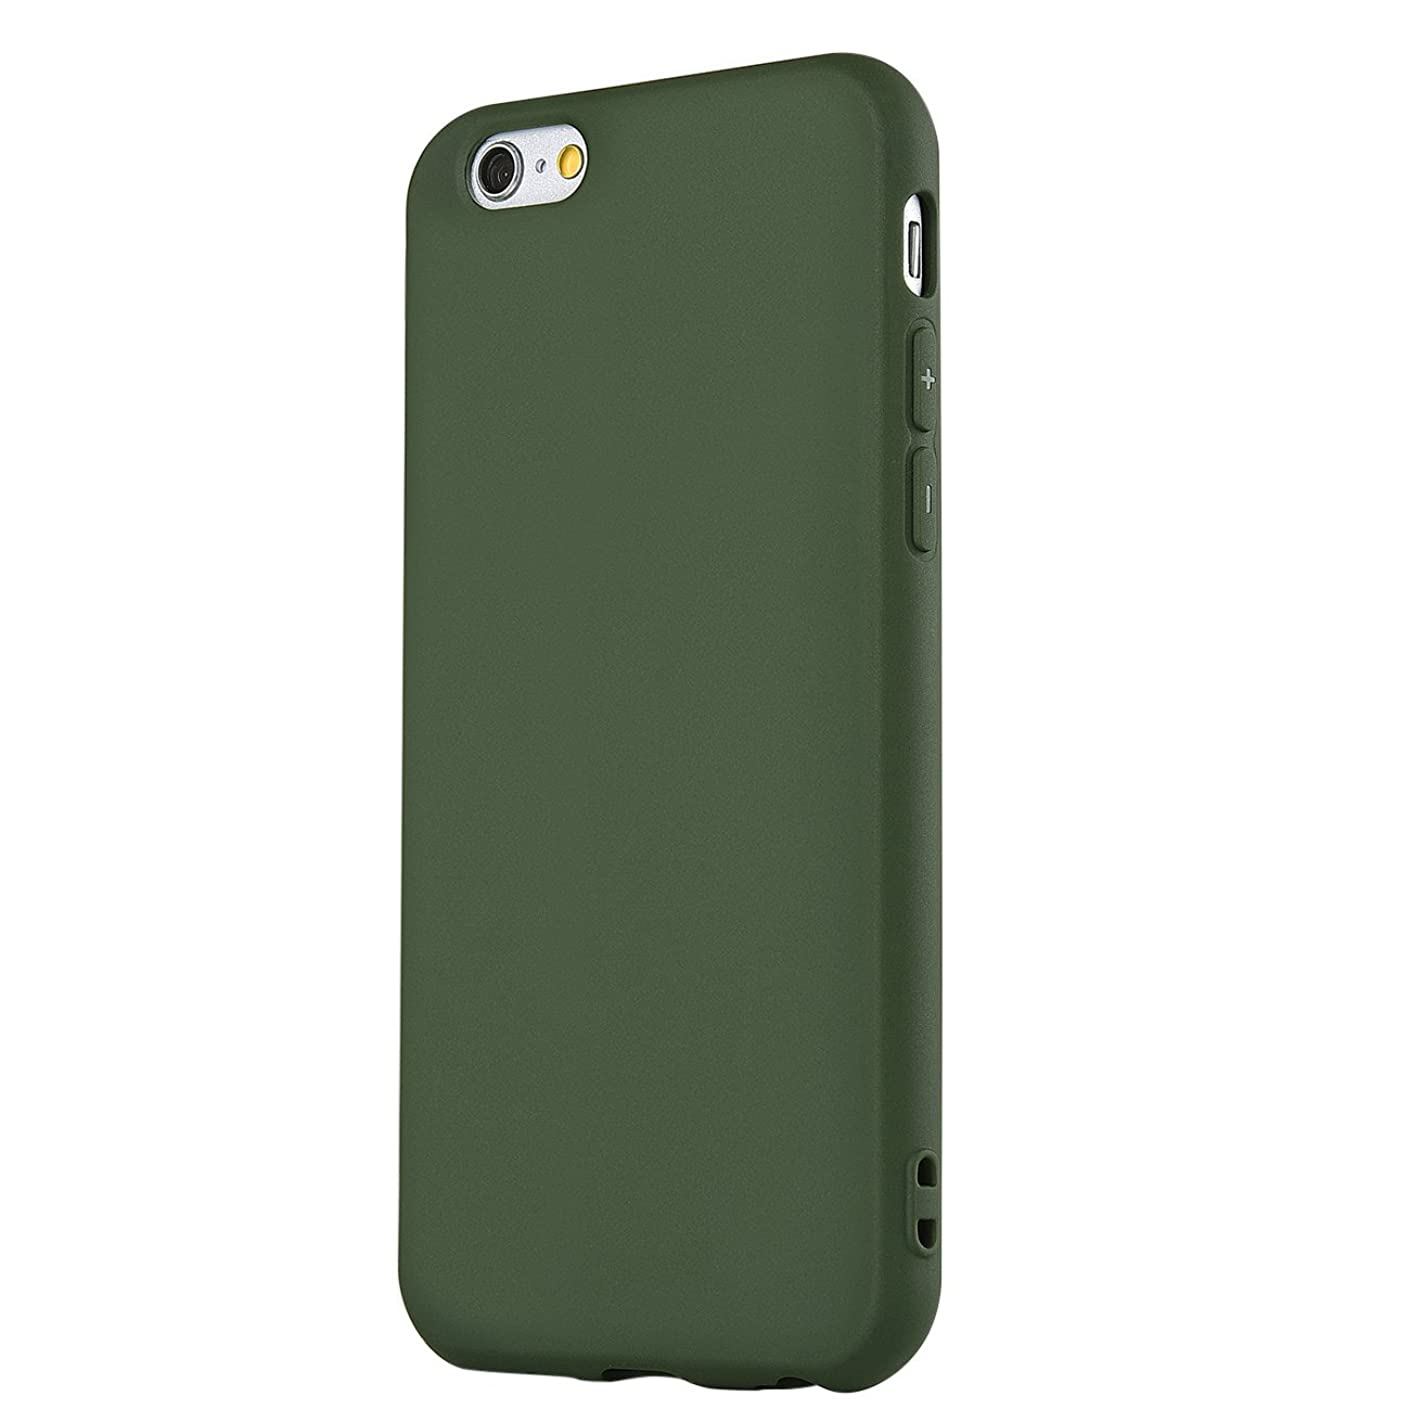 Manleno iphone 6 Case Soft TPU Matte Cover Case for iphone 6s 6 4.7 inch (Olive Green)